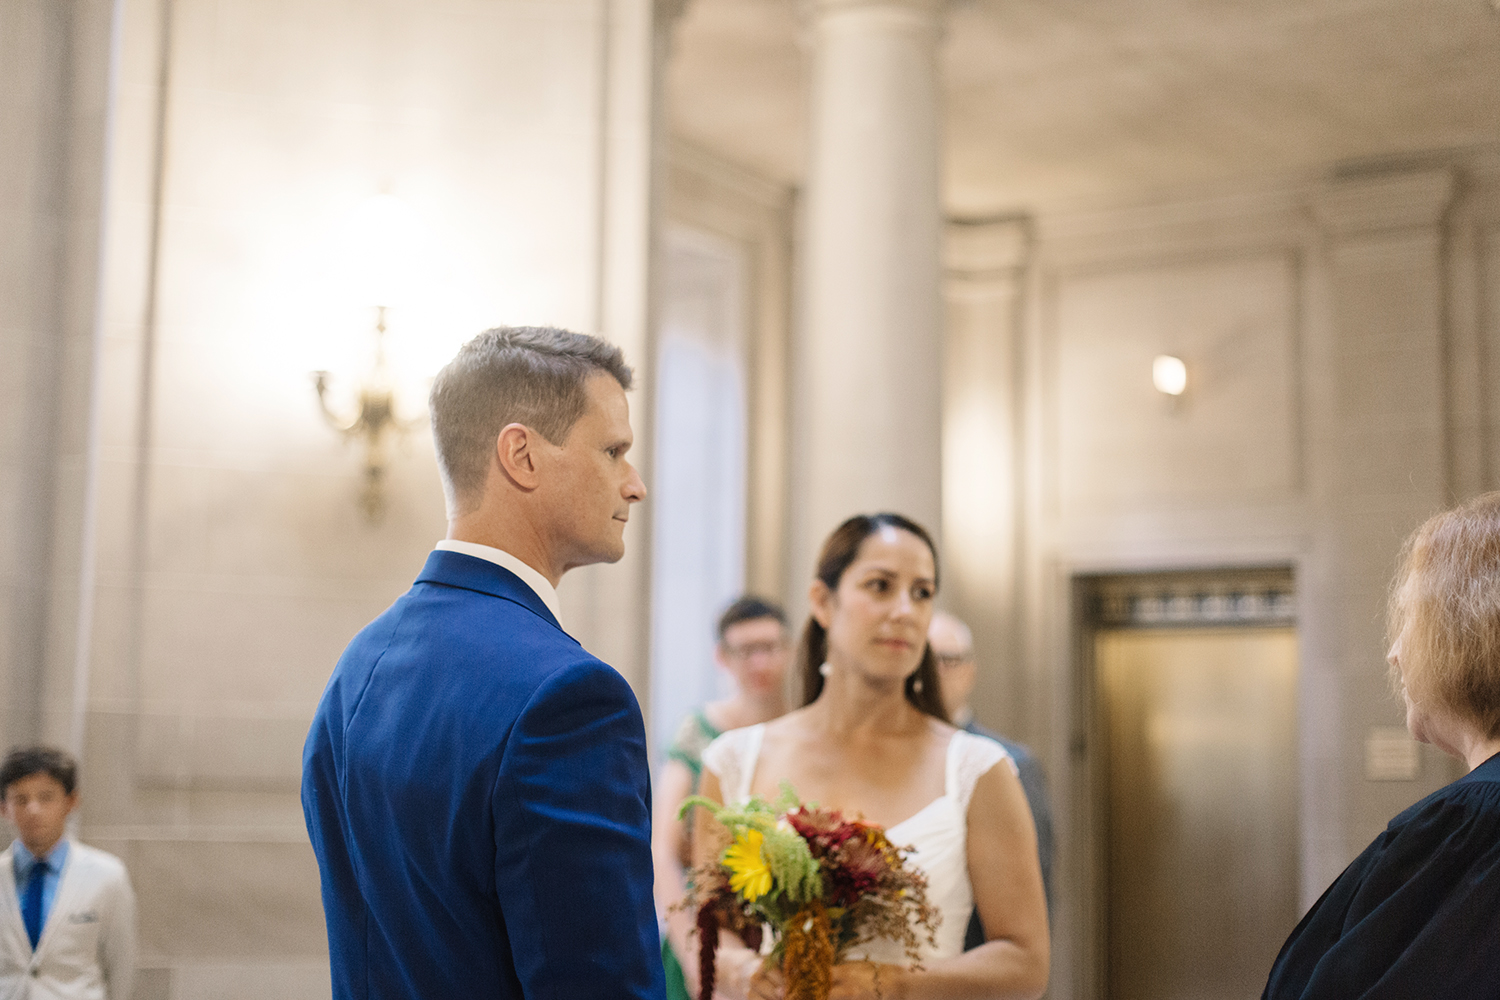 Bride and groom during their wedding ceremony in San Francisco City Hall.